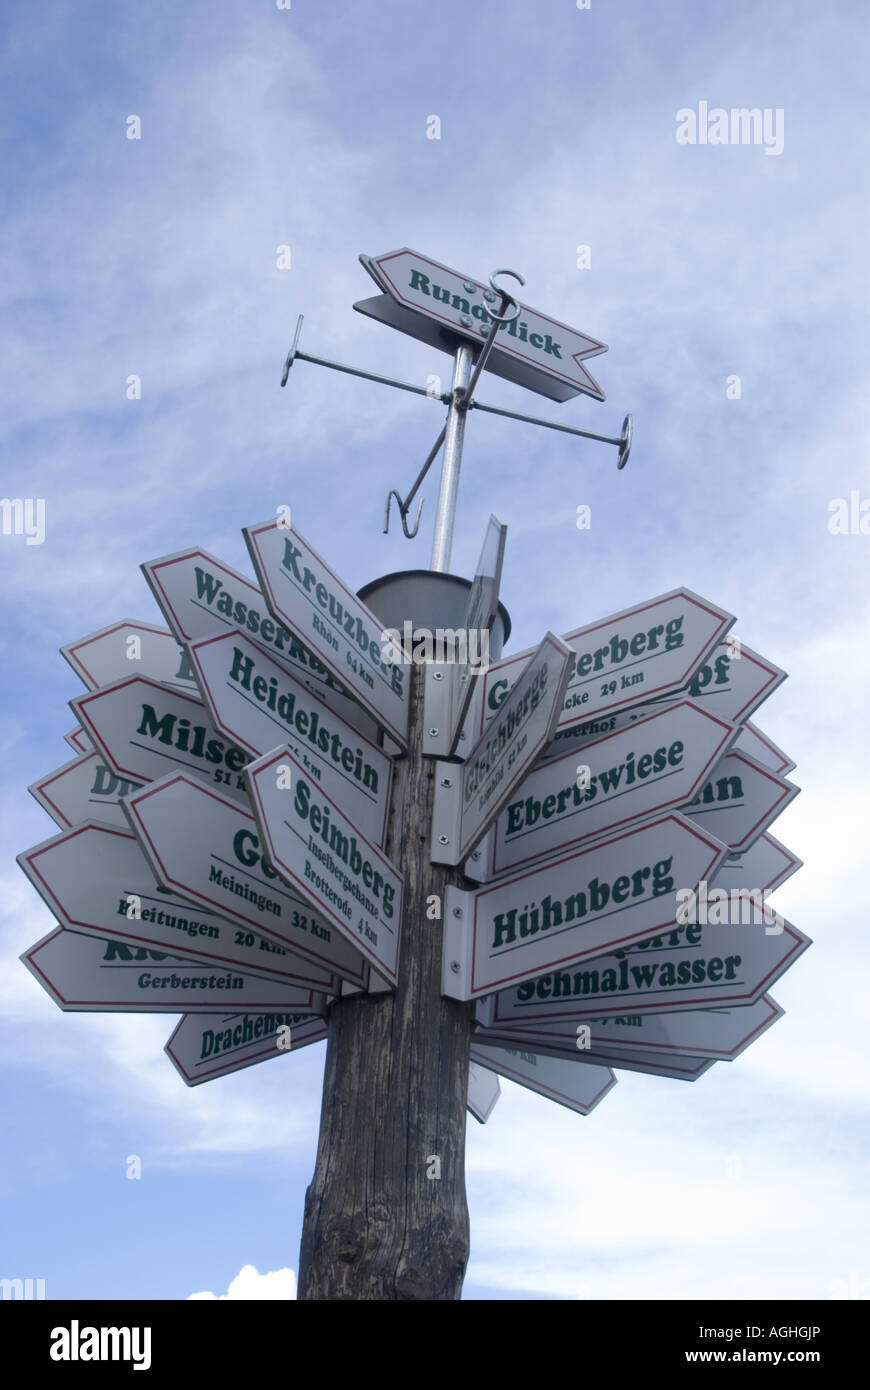 signboards to all directions, Germany, Thueringen, Rennsteig - Stock Image